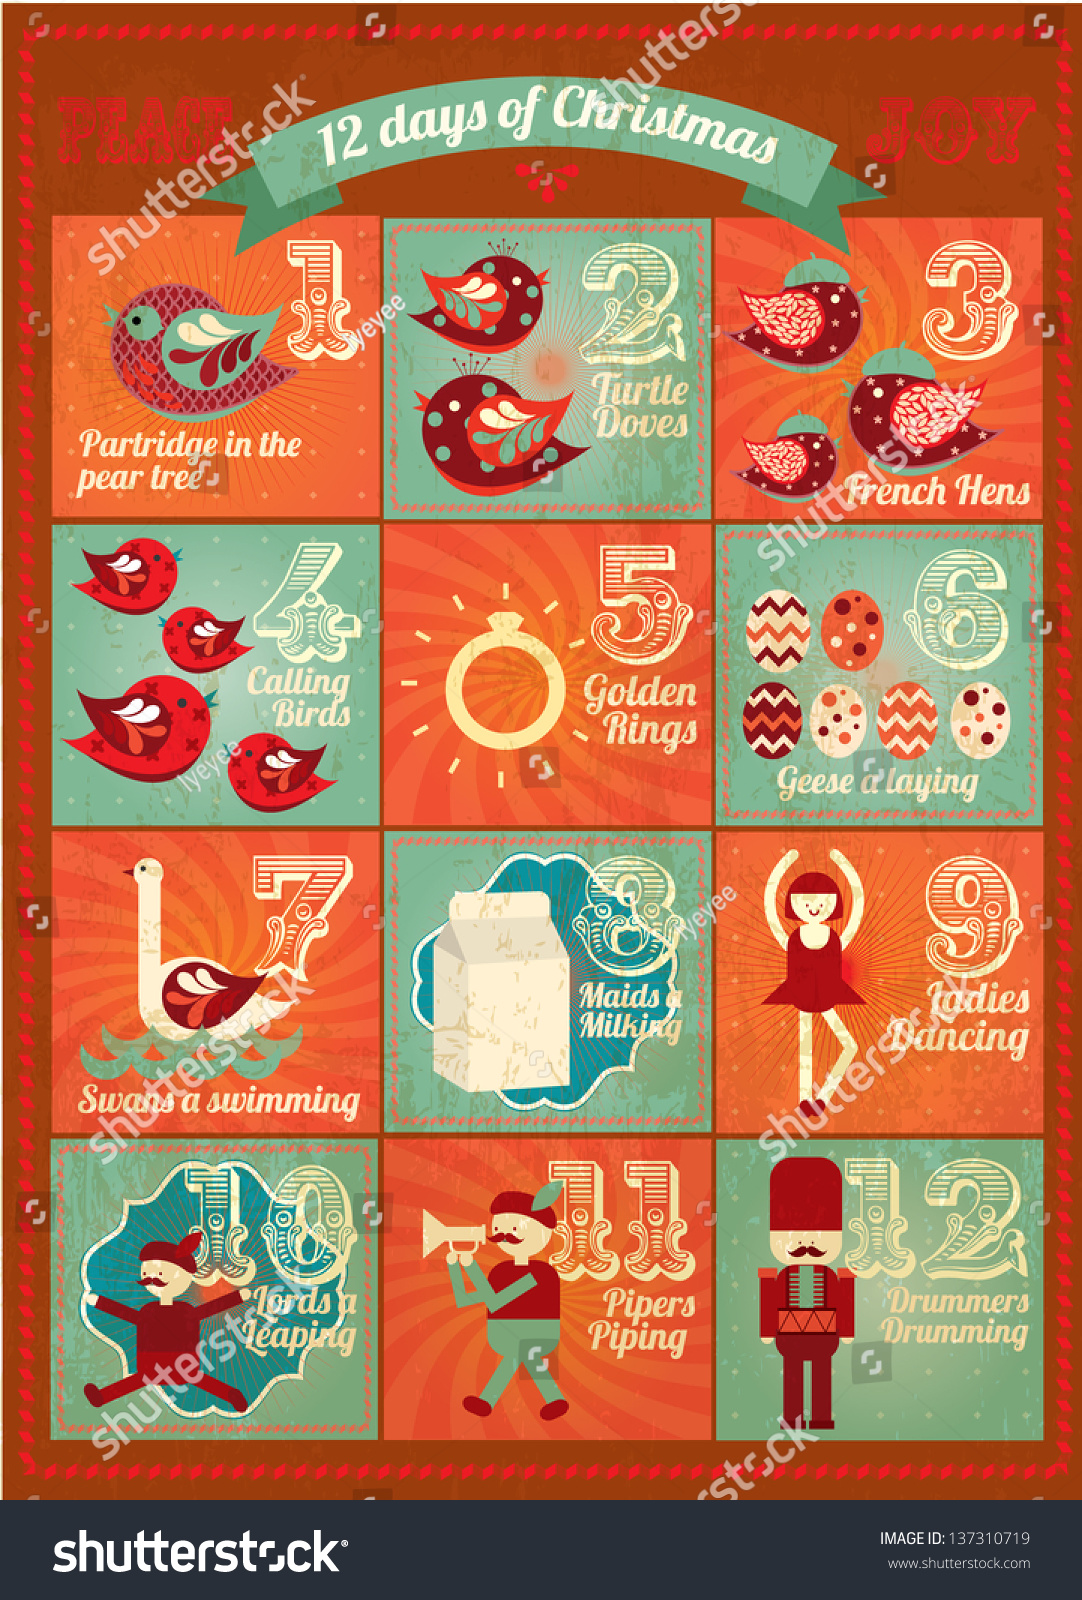 Christmas Calendar Illustration : Vintage advent calendar twelve days of christmas